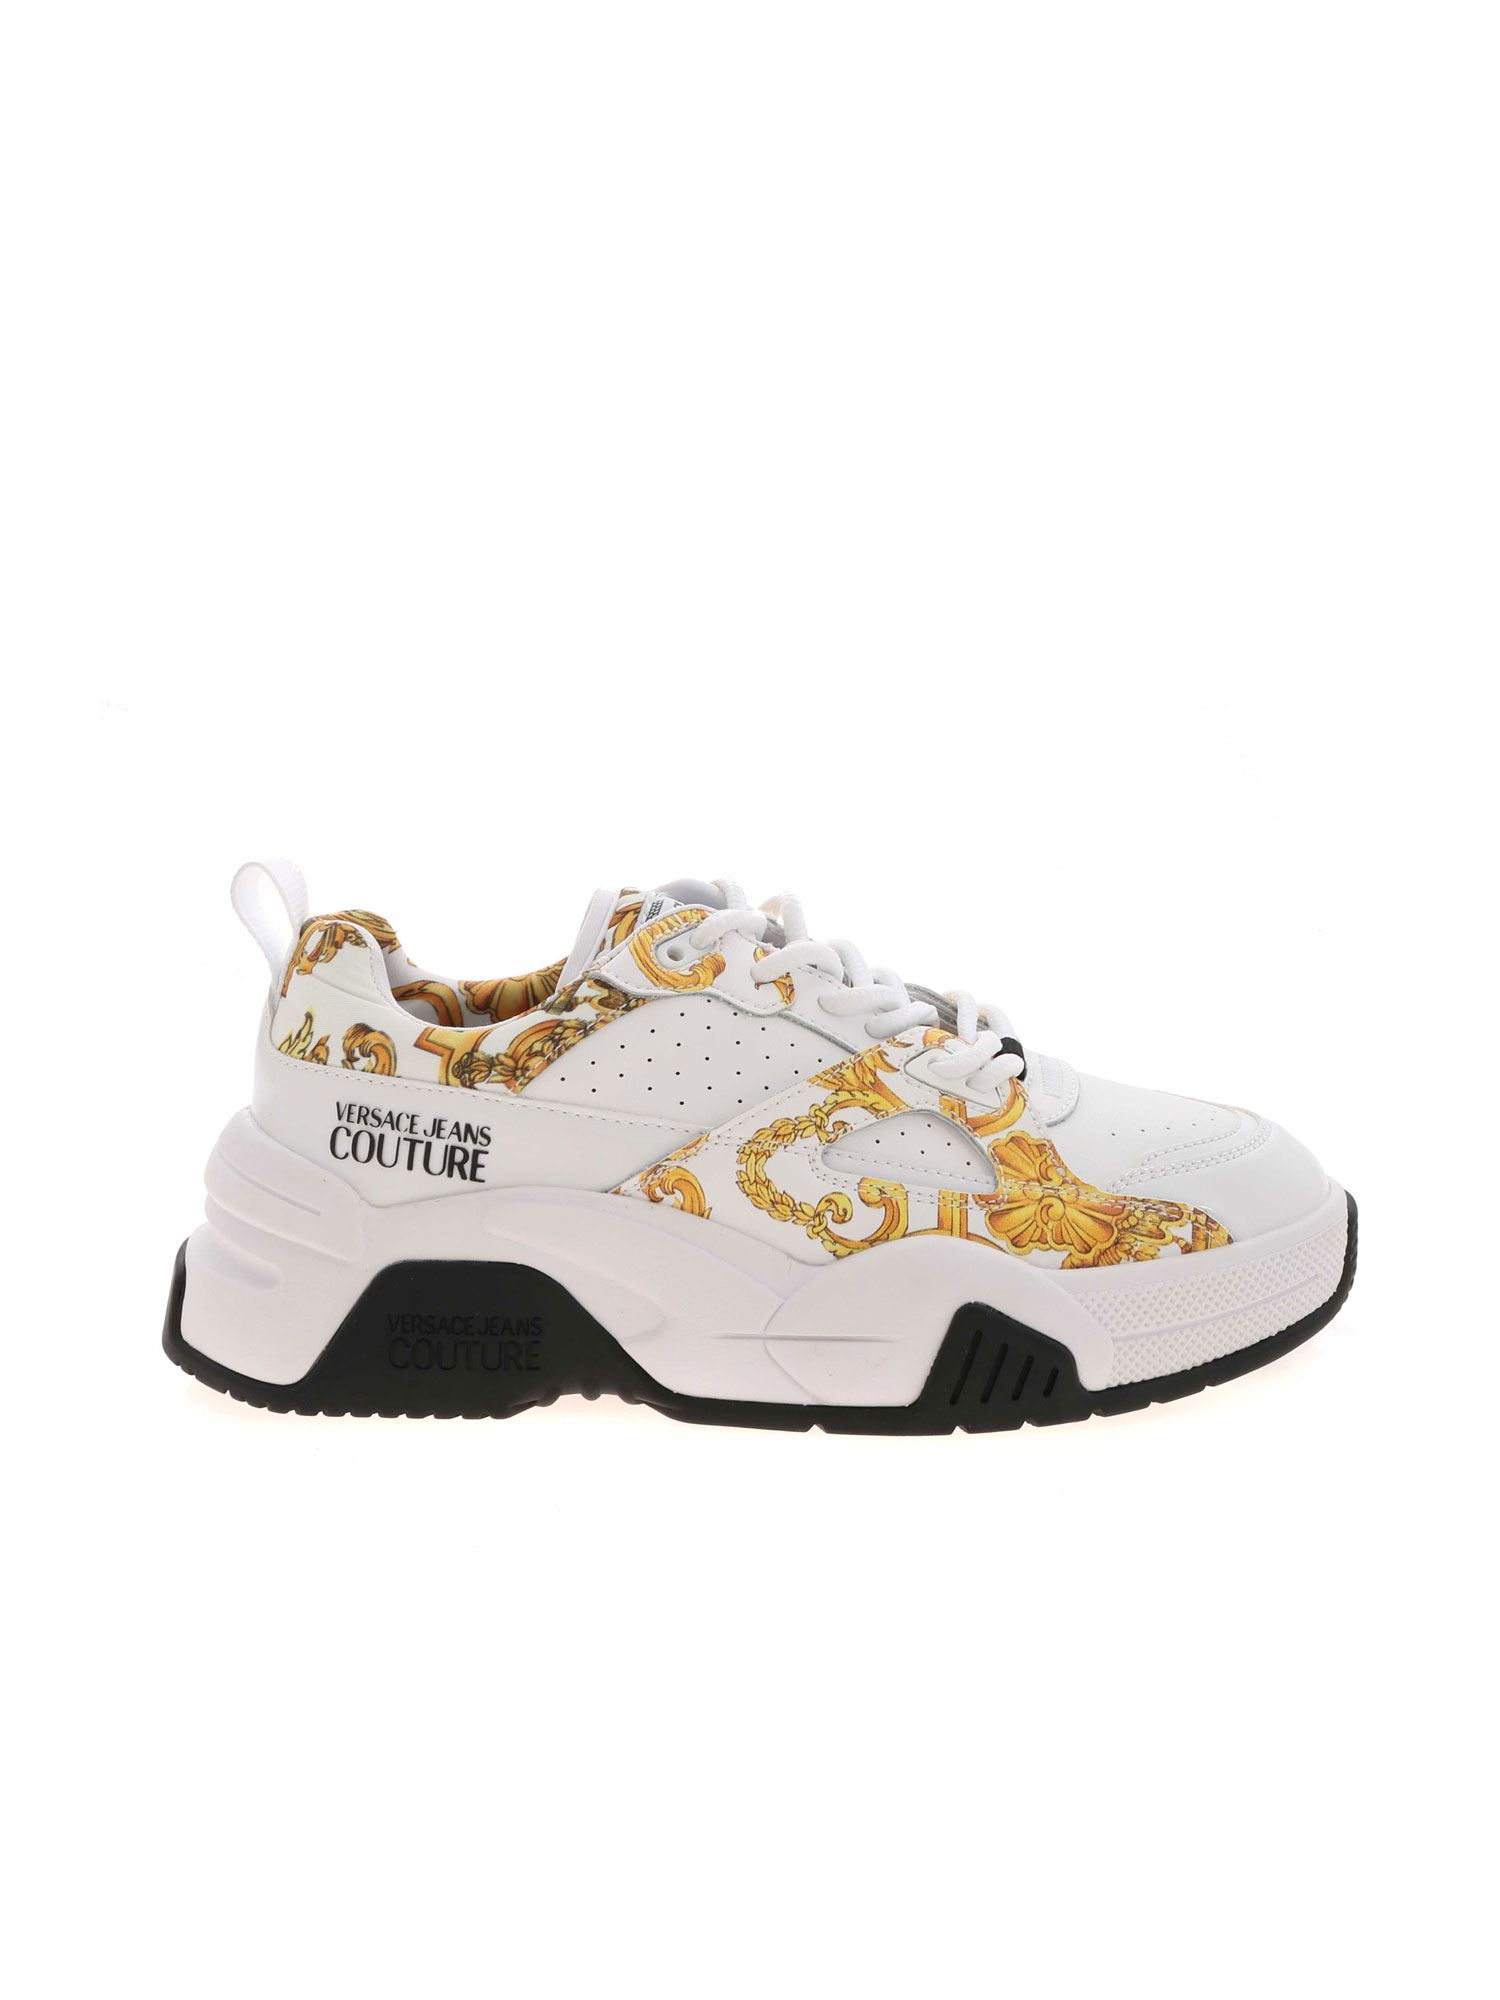 Versace Jeans Couture Leathers VERSAILLES PRINT SNEAKERS IN WHITE